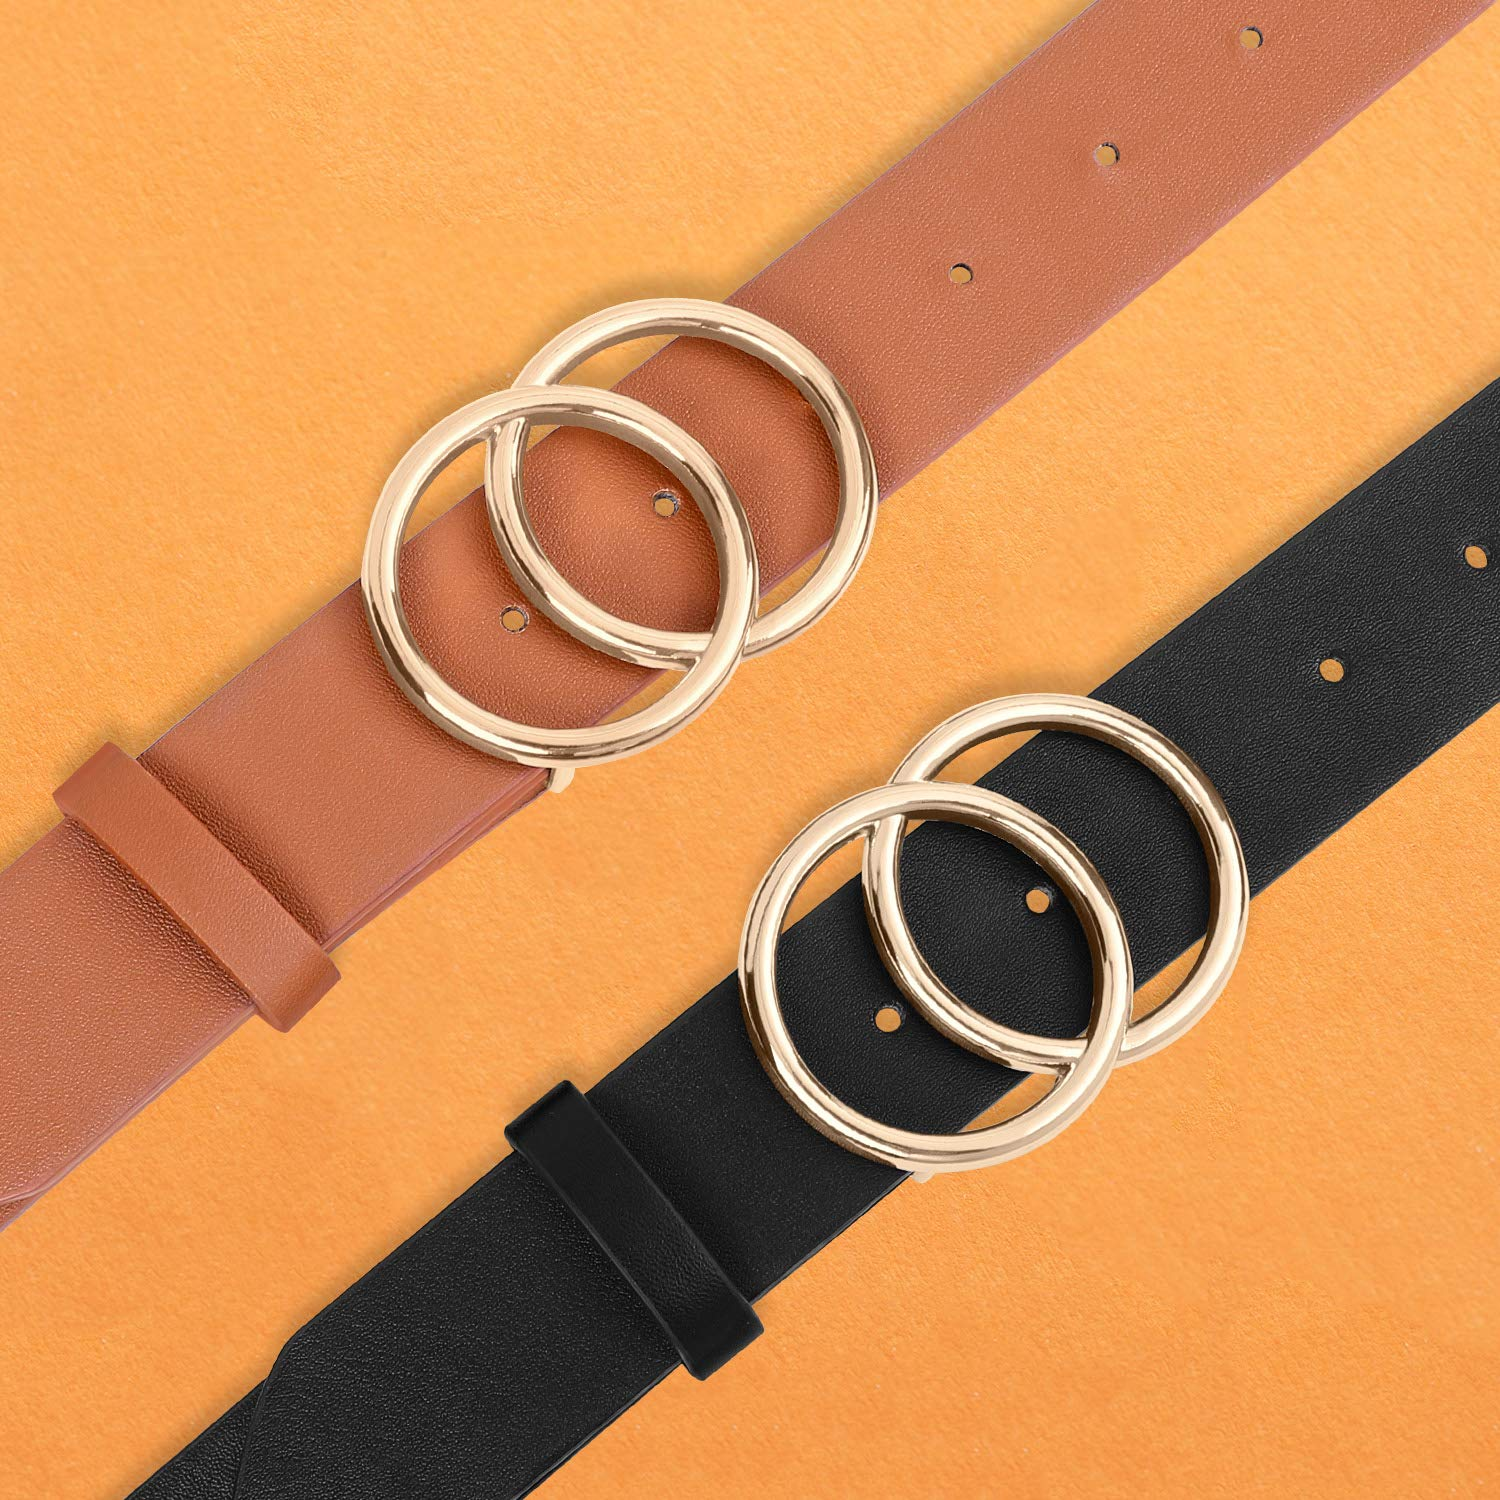 2 Pack Faux Leather Belts for Women Designer Jeans Dress Belt with Double O-Ring Gold Buckle (Black+Brown,2 Pack)